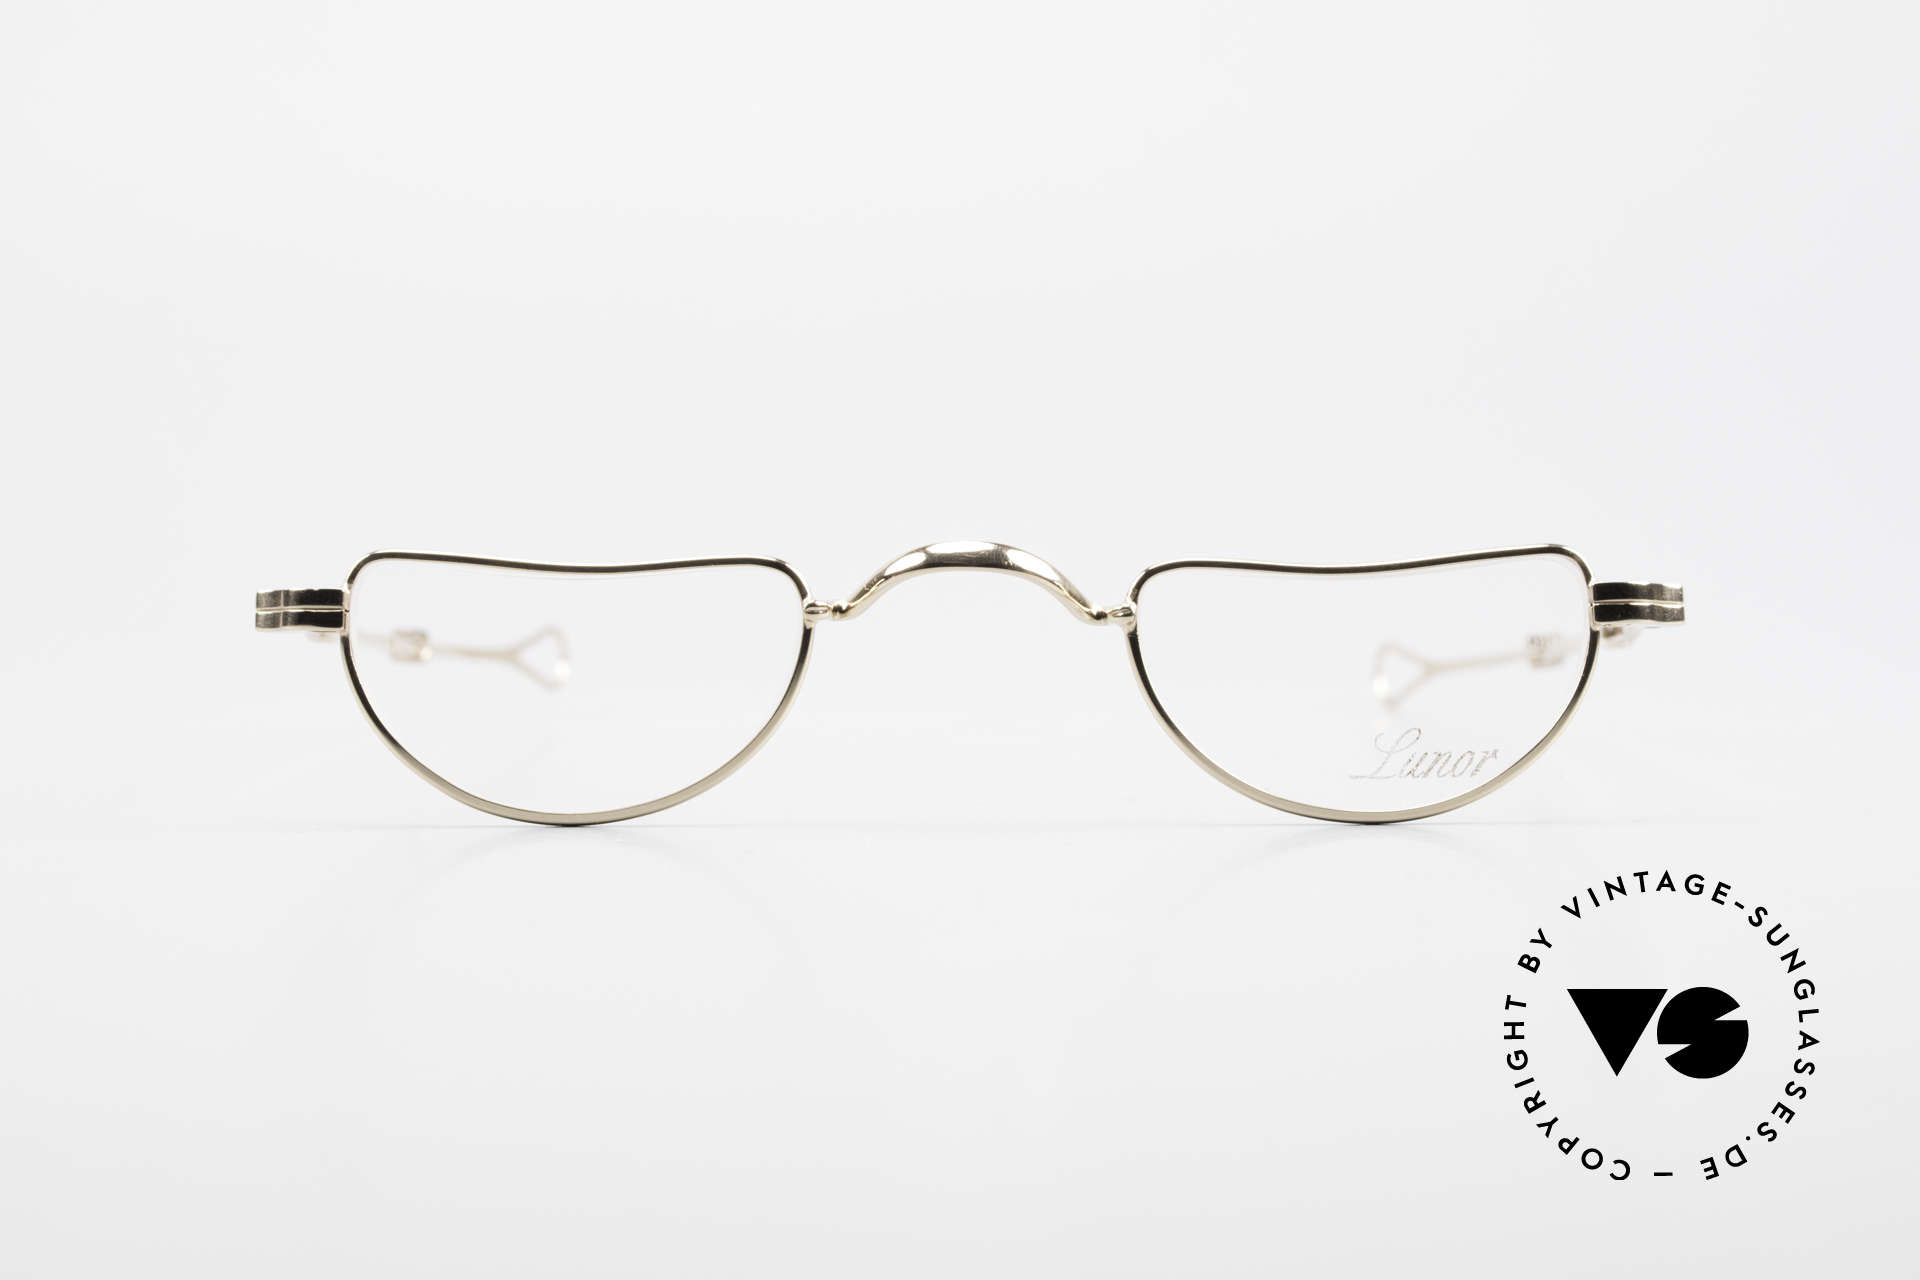 Lunor I 07 Telescopic Extendable Gold Plated Glasses, traditional German brand; quality handmade in Germany, Made for Men and Women